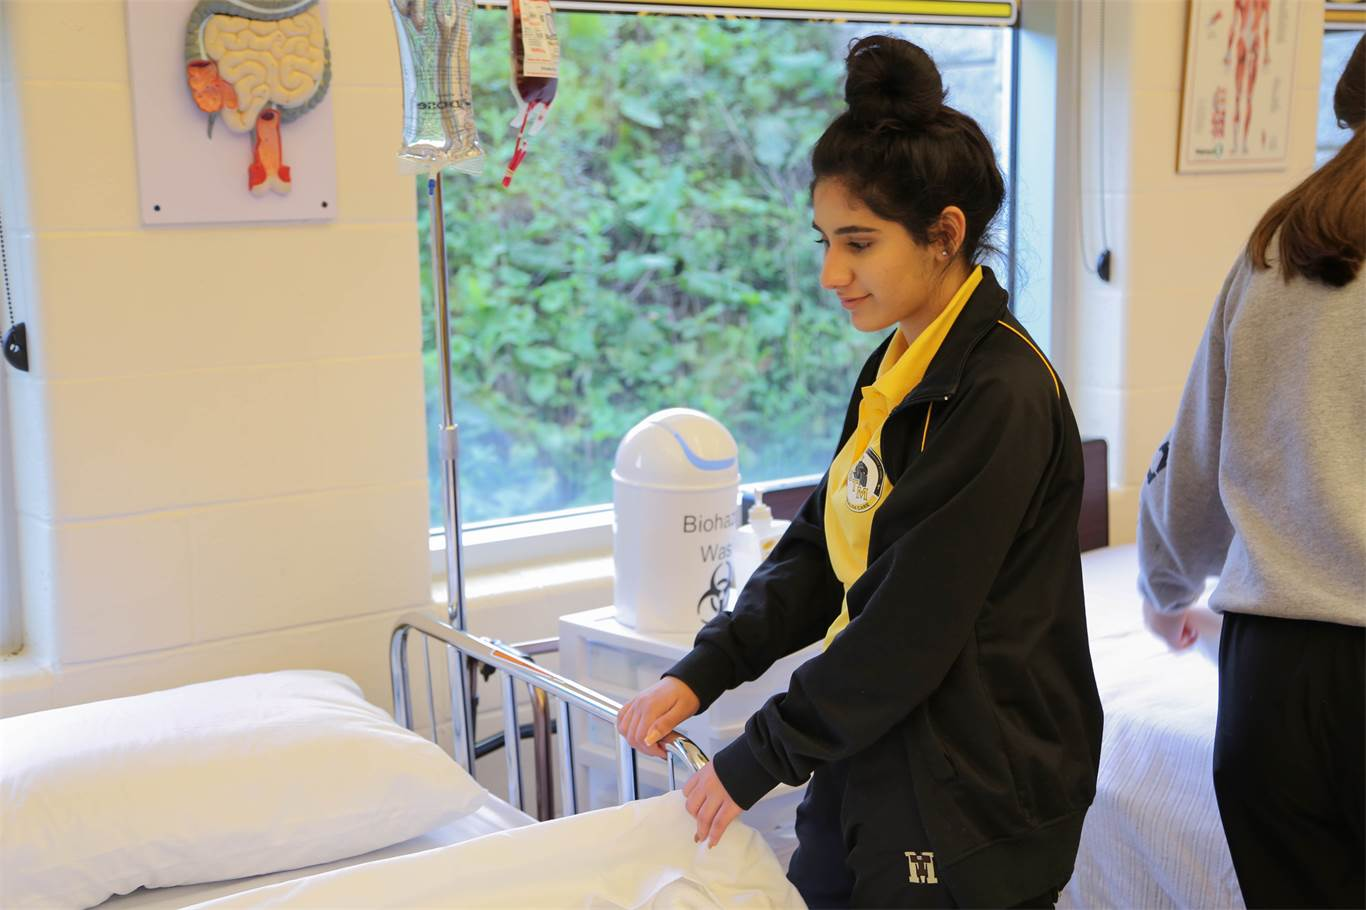 STM health care class focuses on hands-on approach